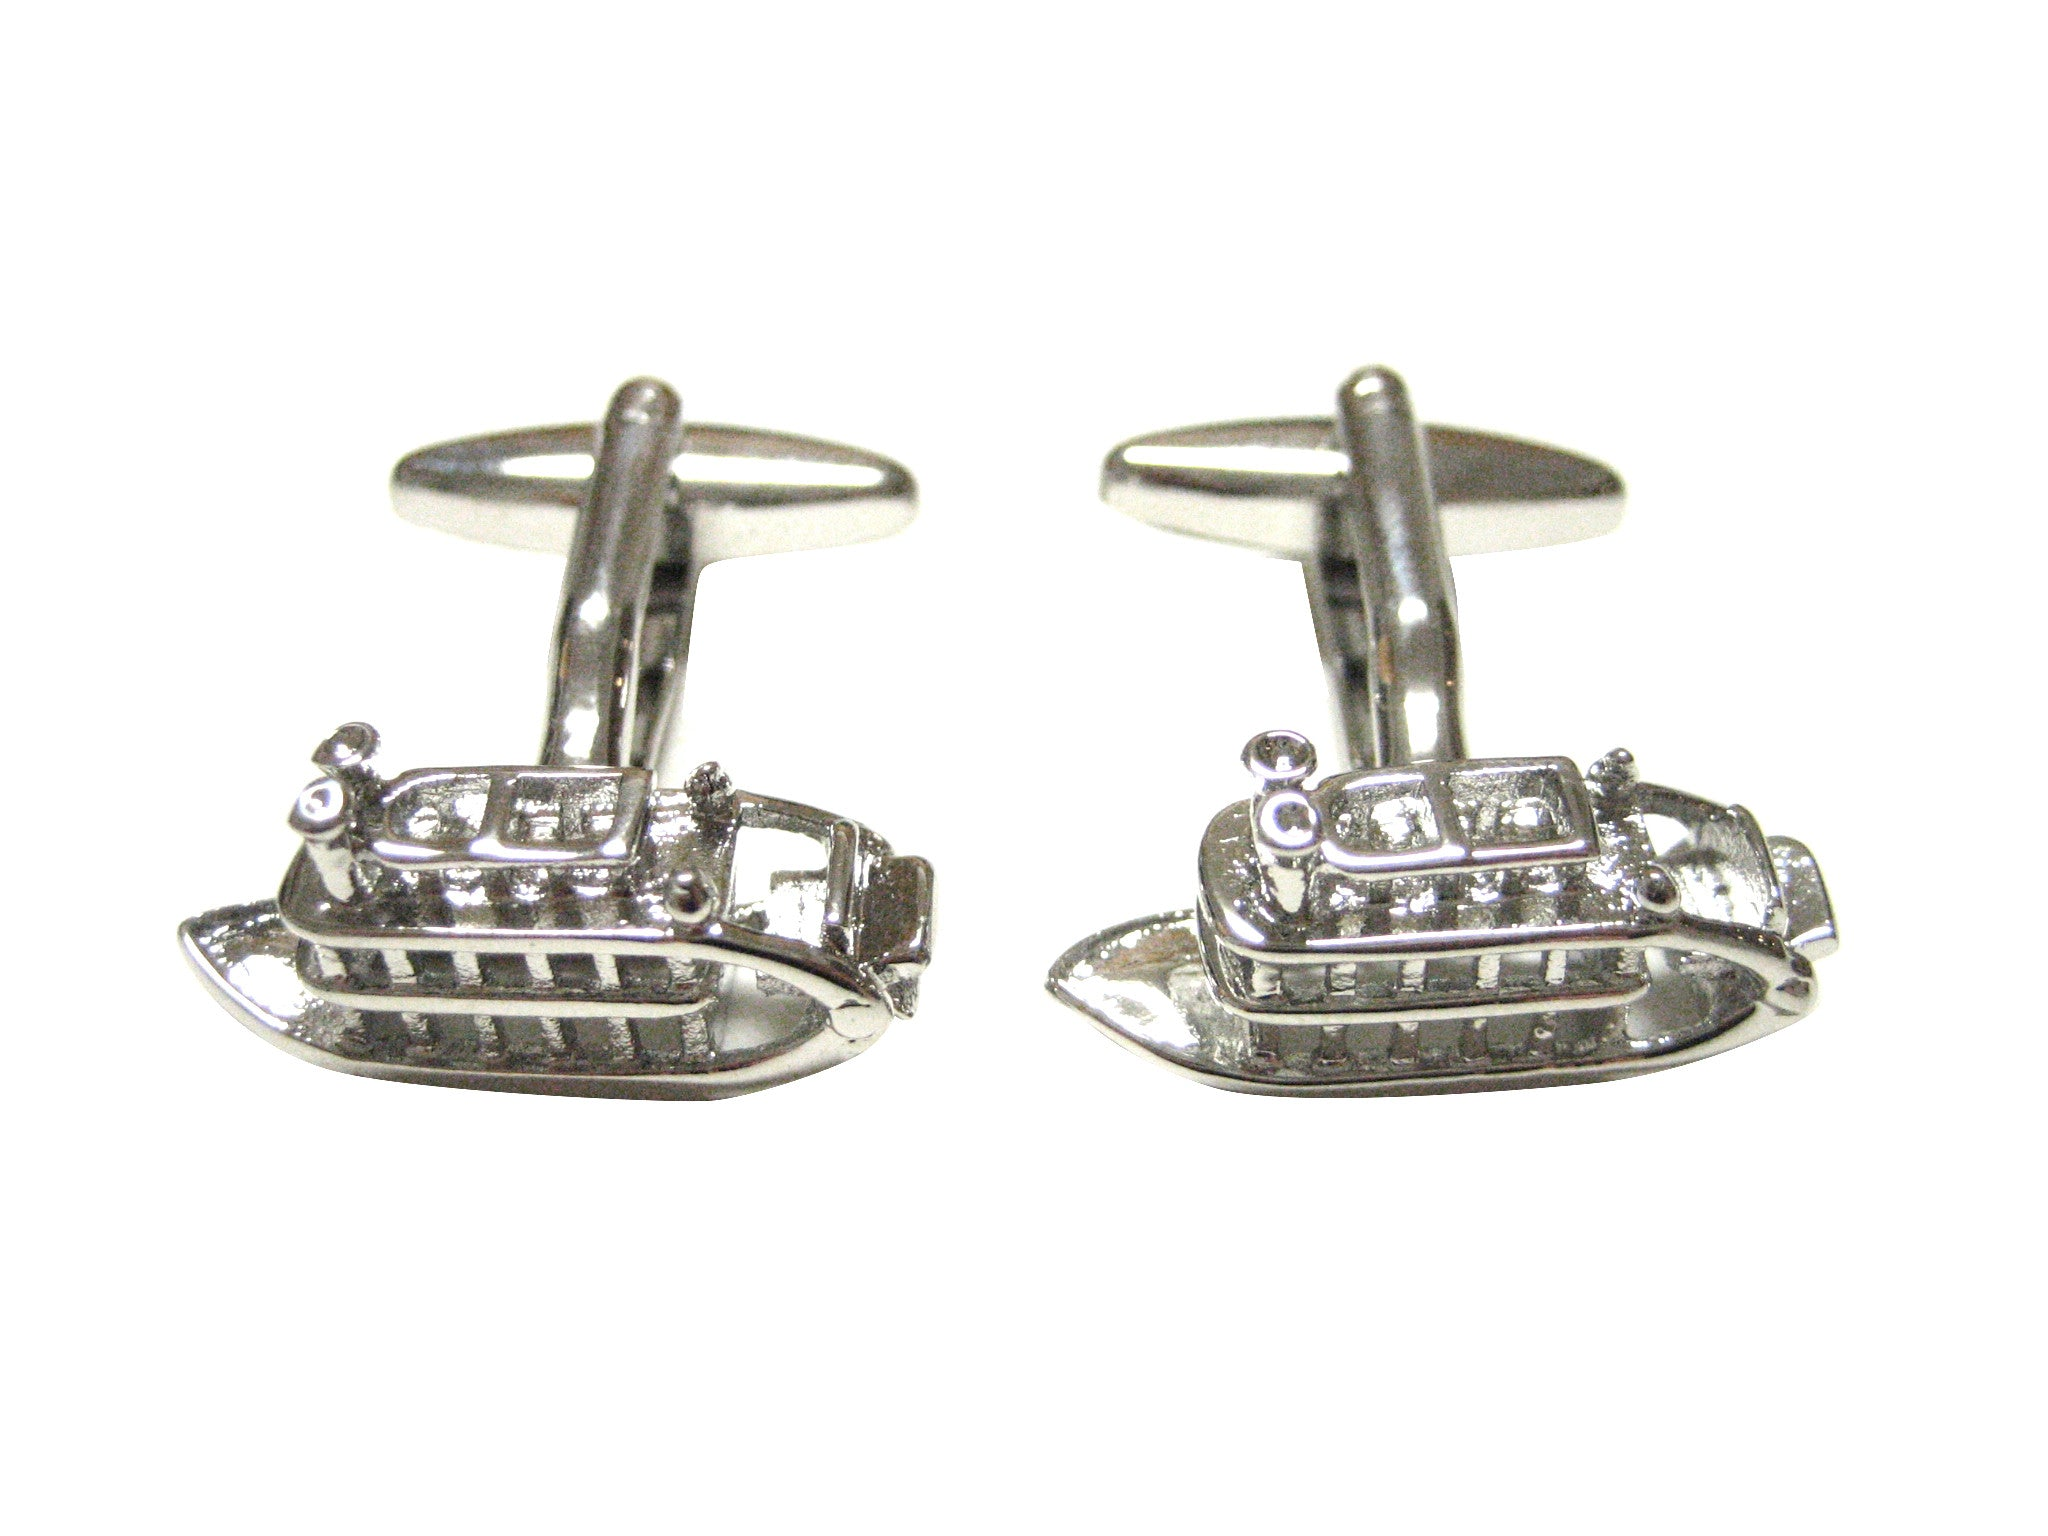 Steam Boat Cufflinks